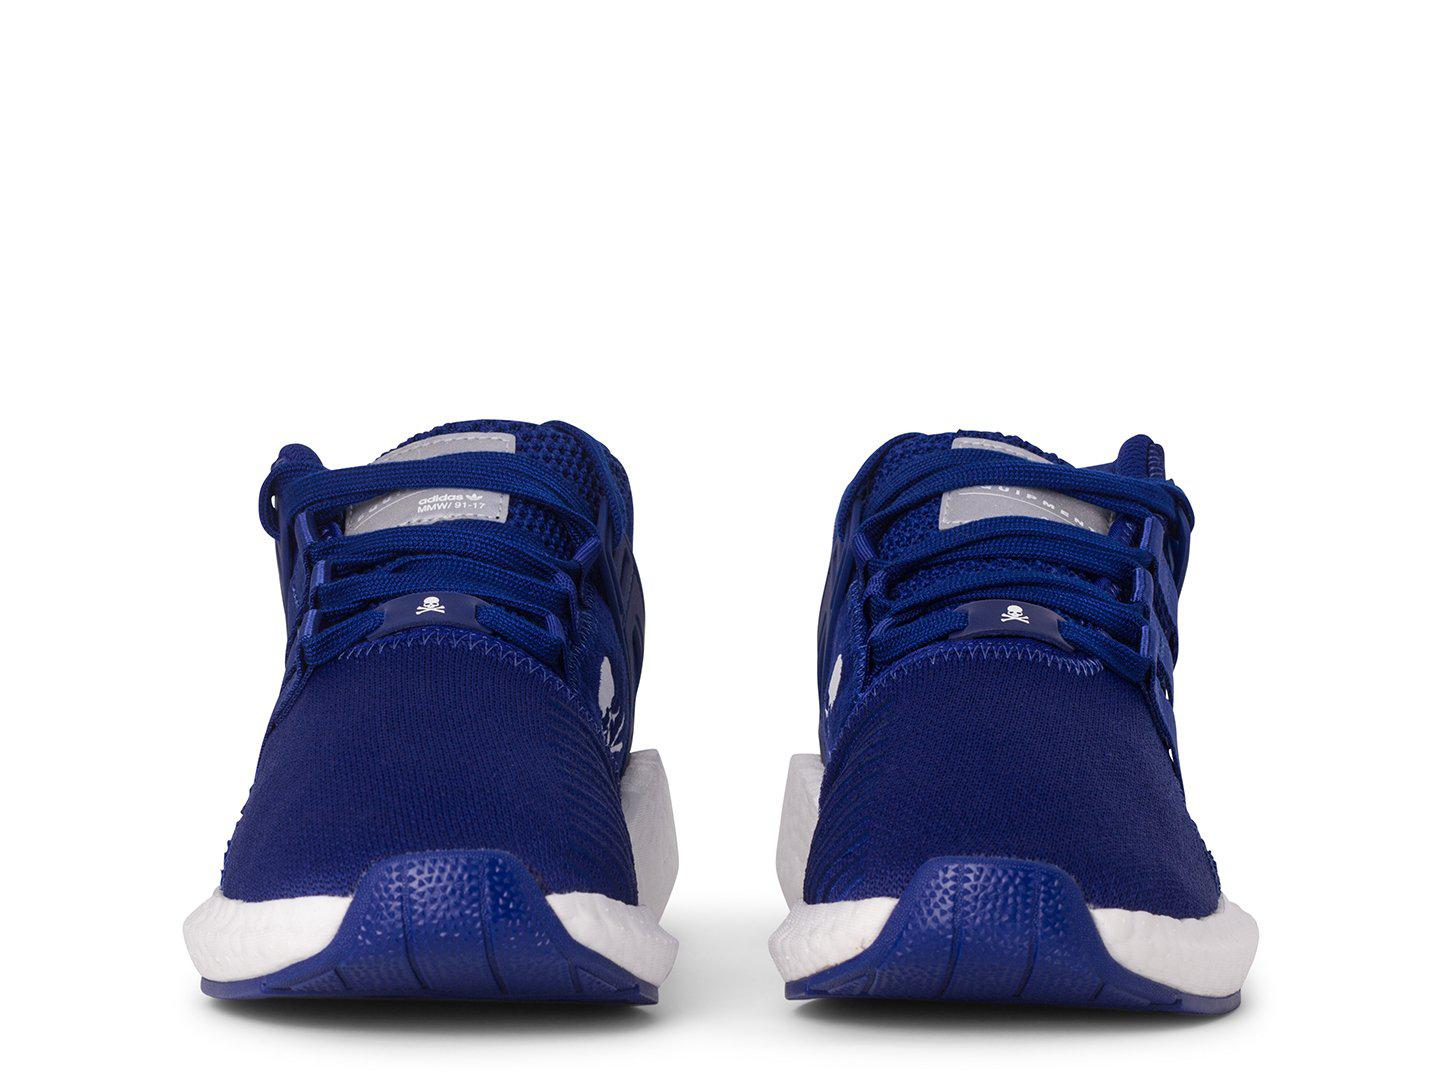 new style a4192 4e40a ... Lyst - Adidas Originals Mastermind World Eqt Support Mid 931 super  quality 69b35 571bb ...